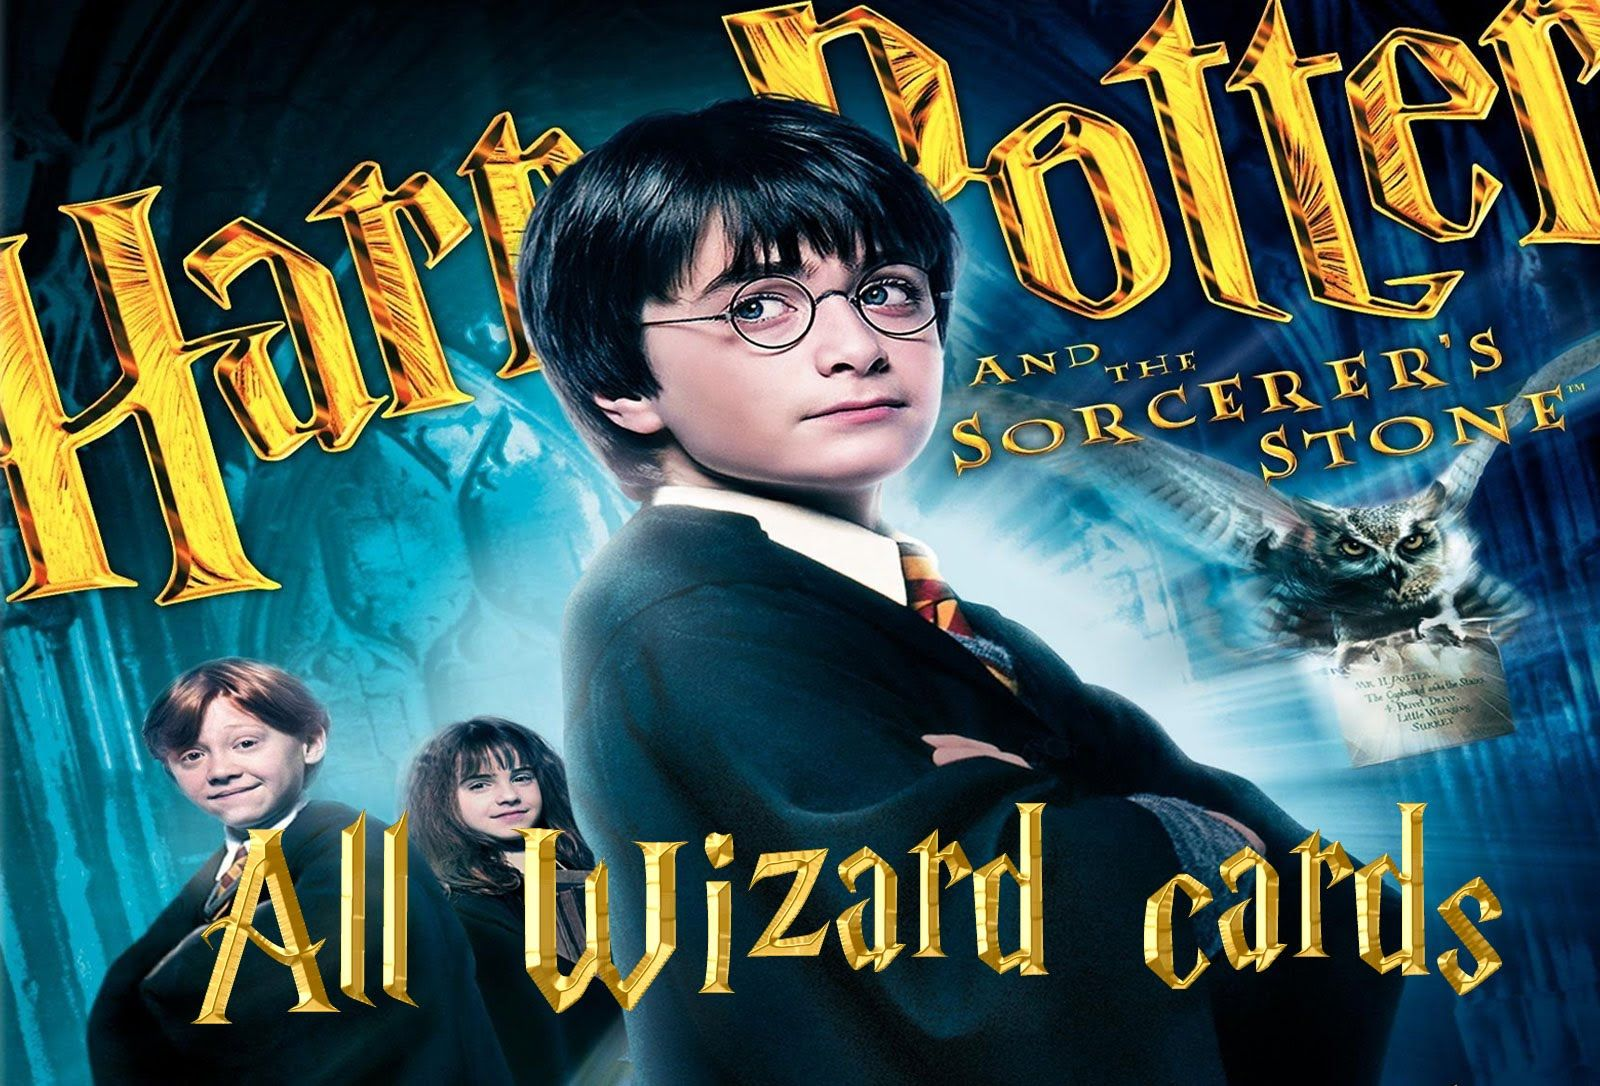 Harry potter and the sorcerers stone all wizard cards